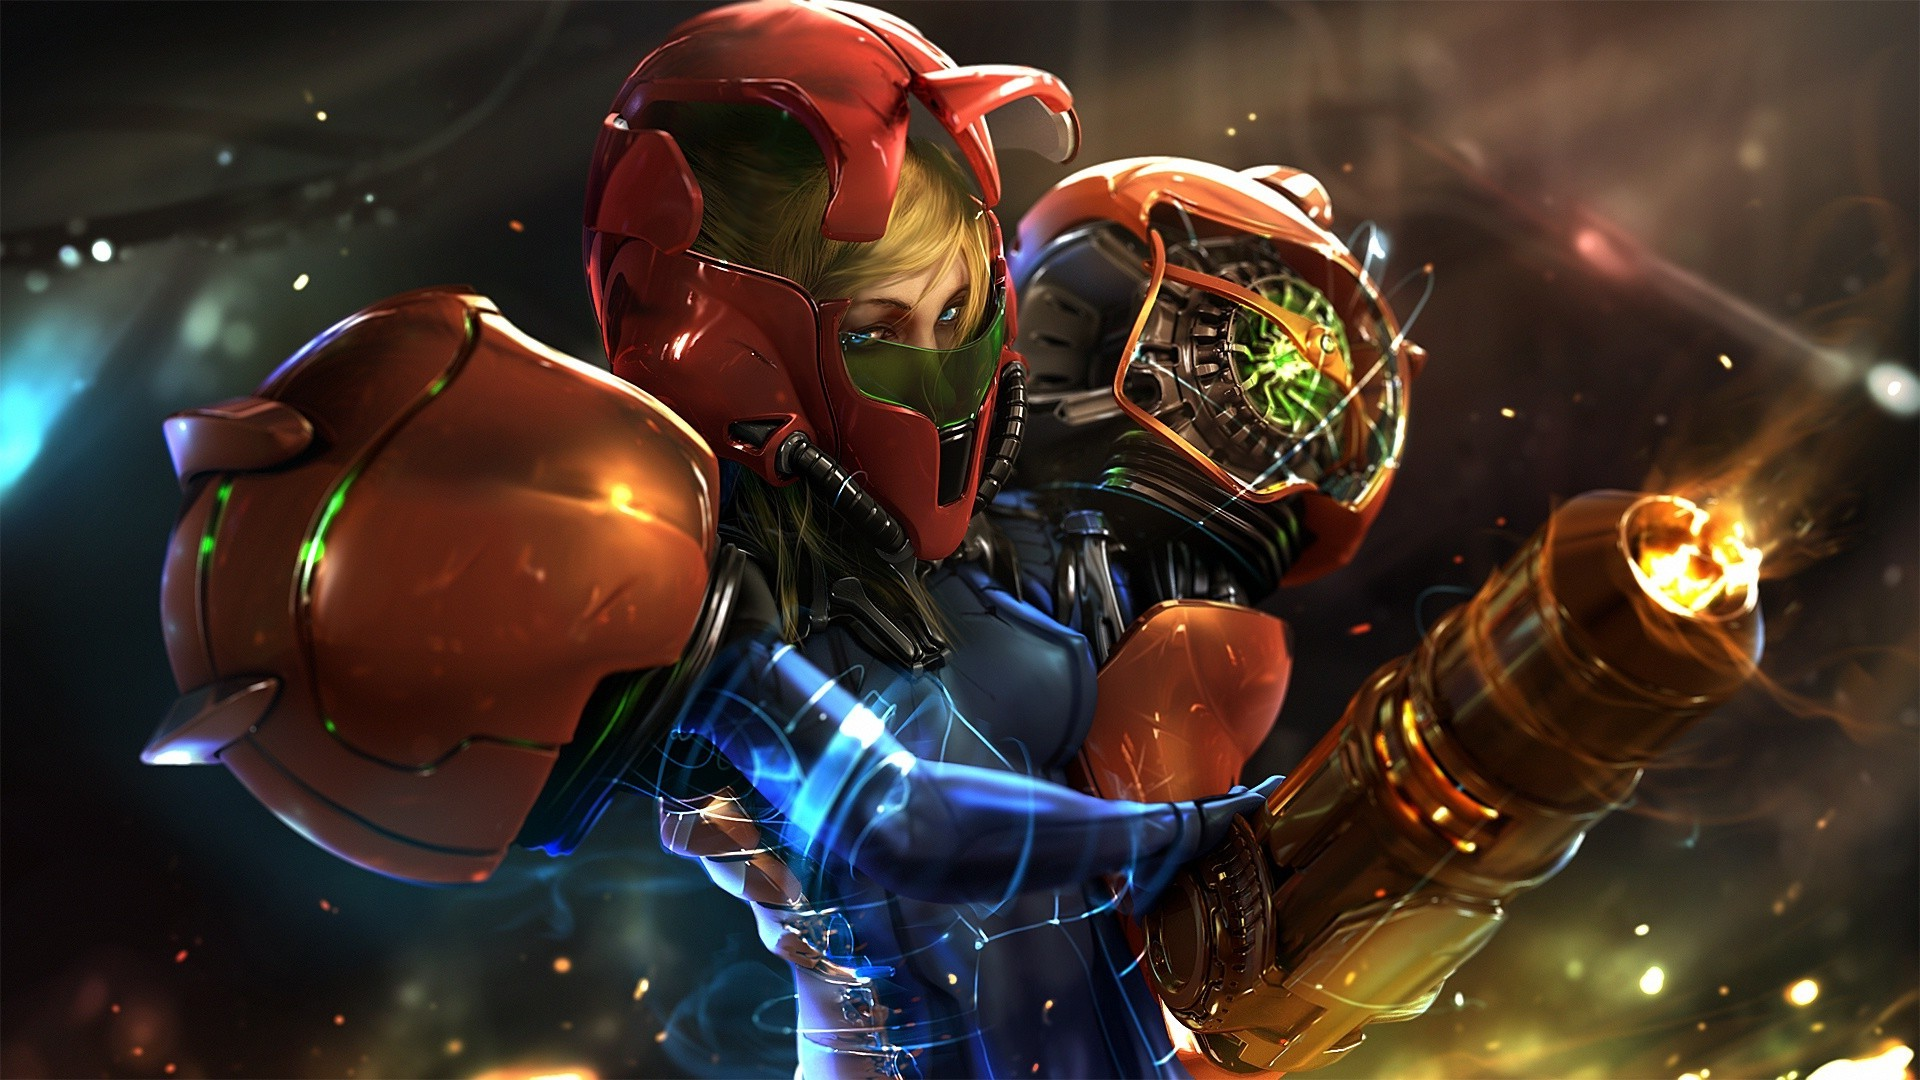 Natsu 3d Wallpapers Video Games Metroid Samus Aran Wallpapers Hd Desktop